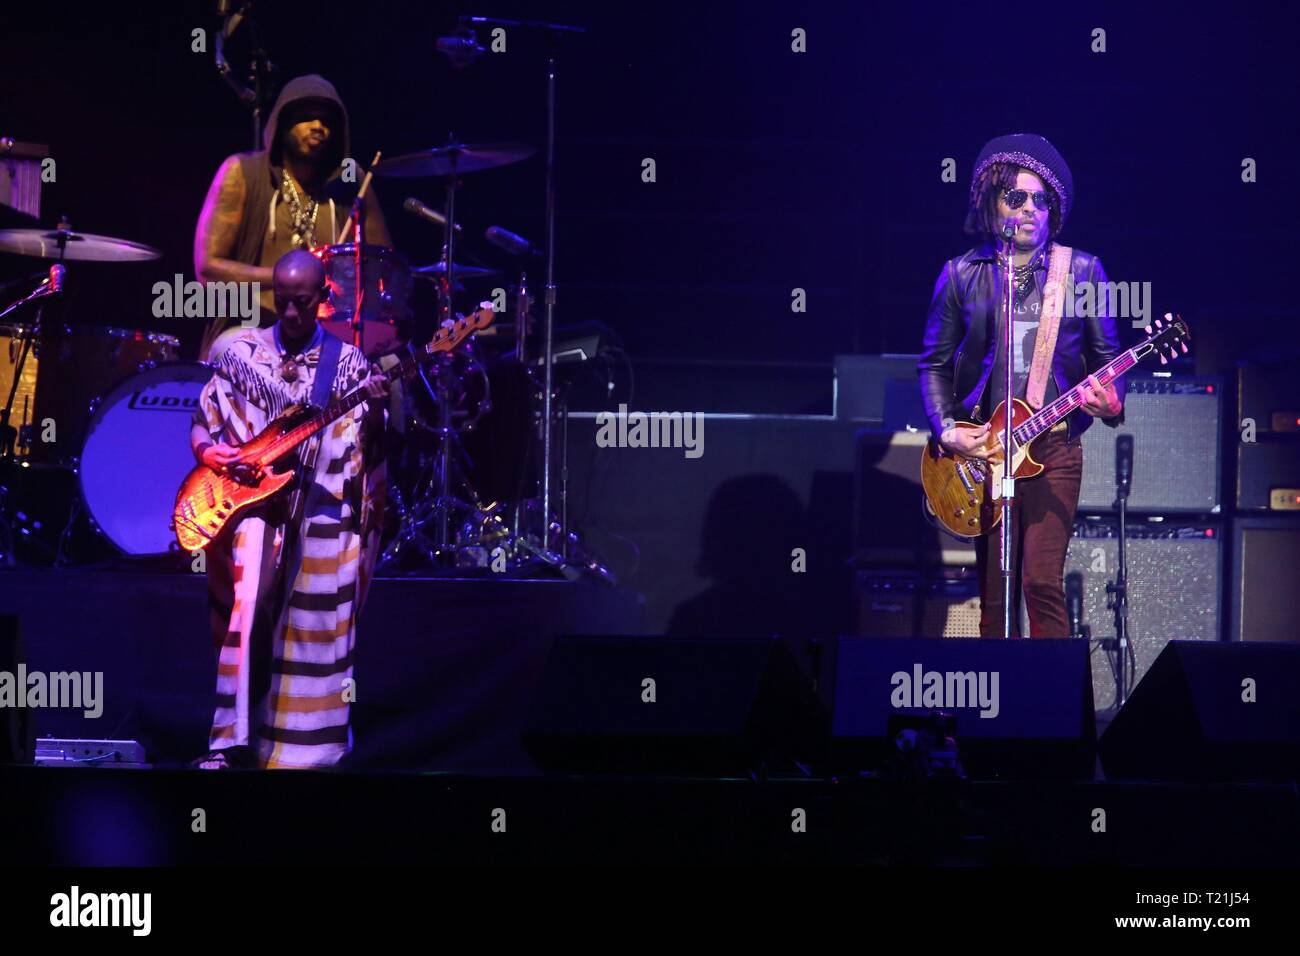 Santiago, Chile. 30th Mar, 2019. - CORRECT PHOTOGRAPHER'S CREDIT - US singer Lenny Kravitz performs on stage during the 9th edition of the Lollapalooza music festival, in Santiago, Chile, 29 March 2019. Credit: Elvis González/EFE/Alamy Live News - Stock Image